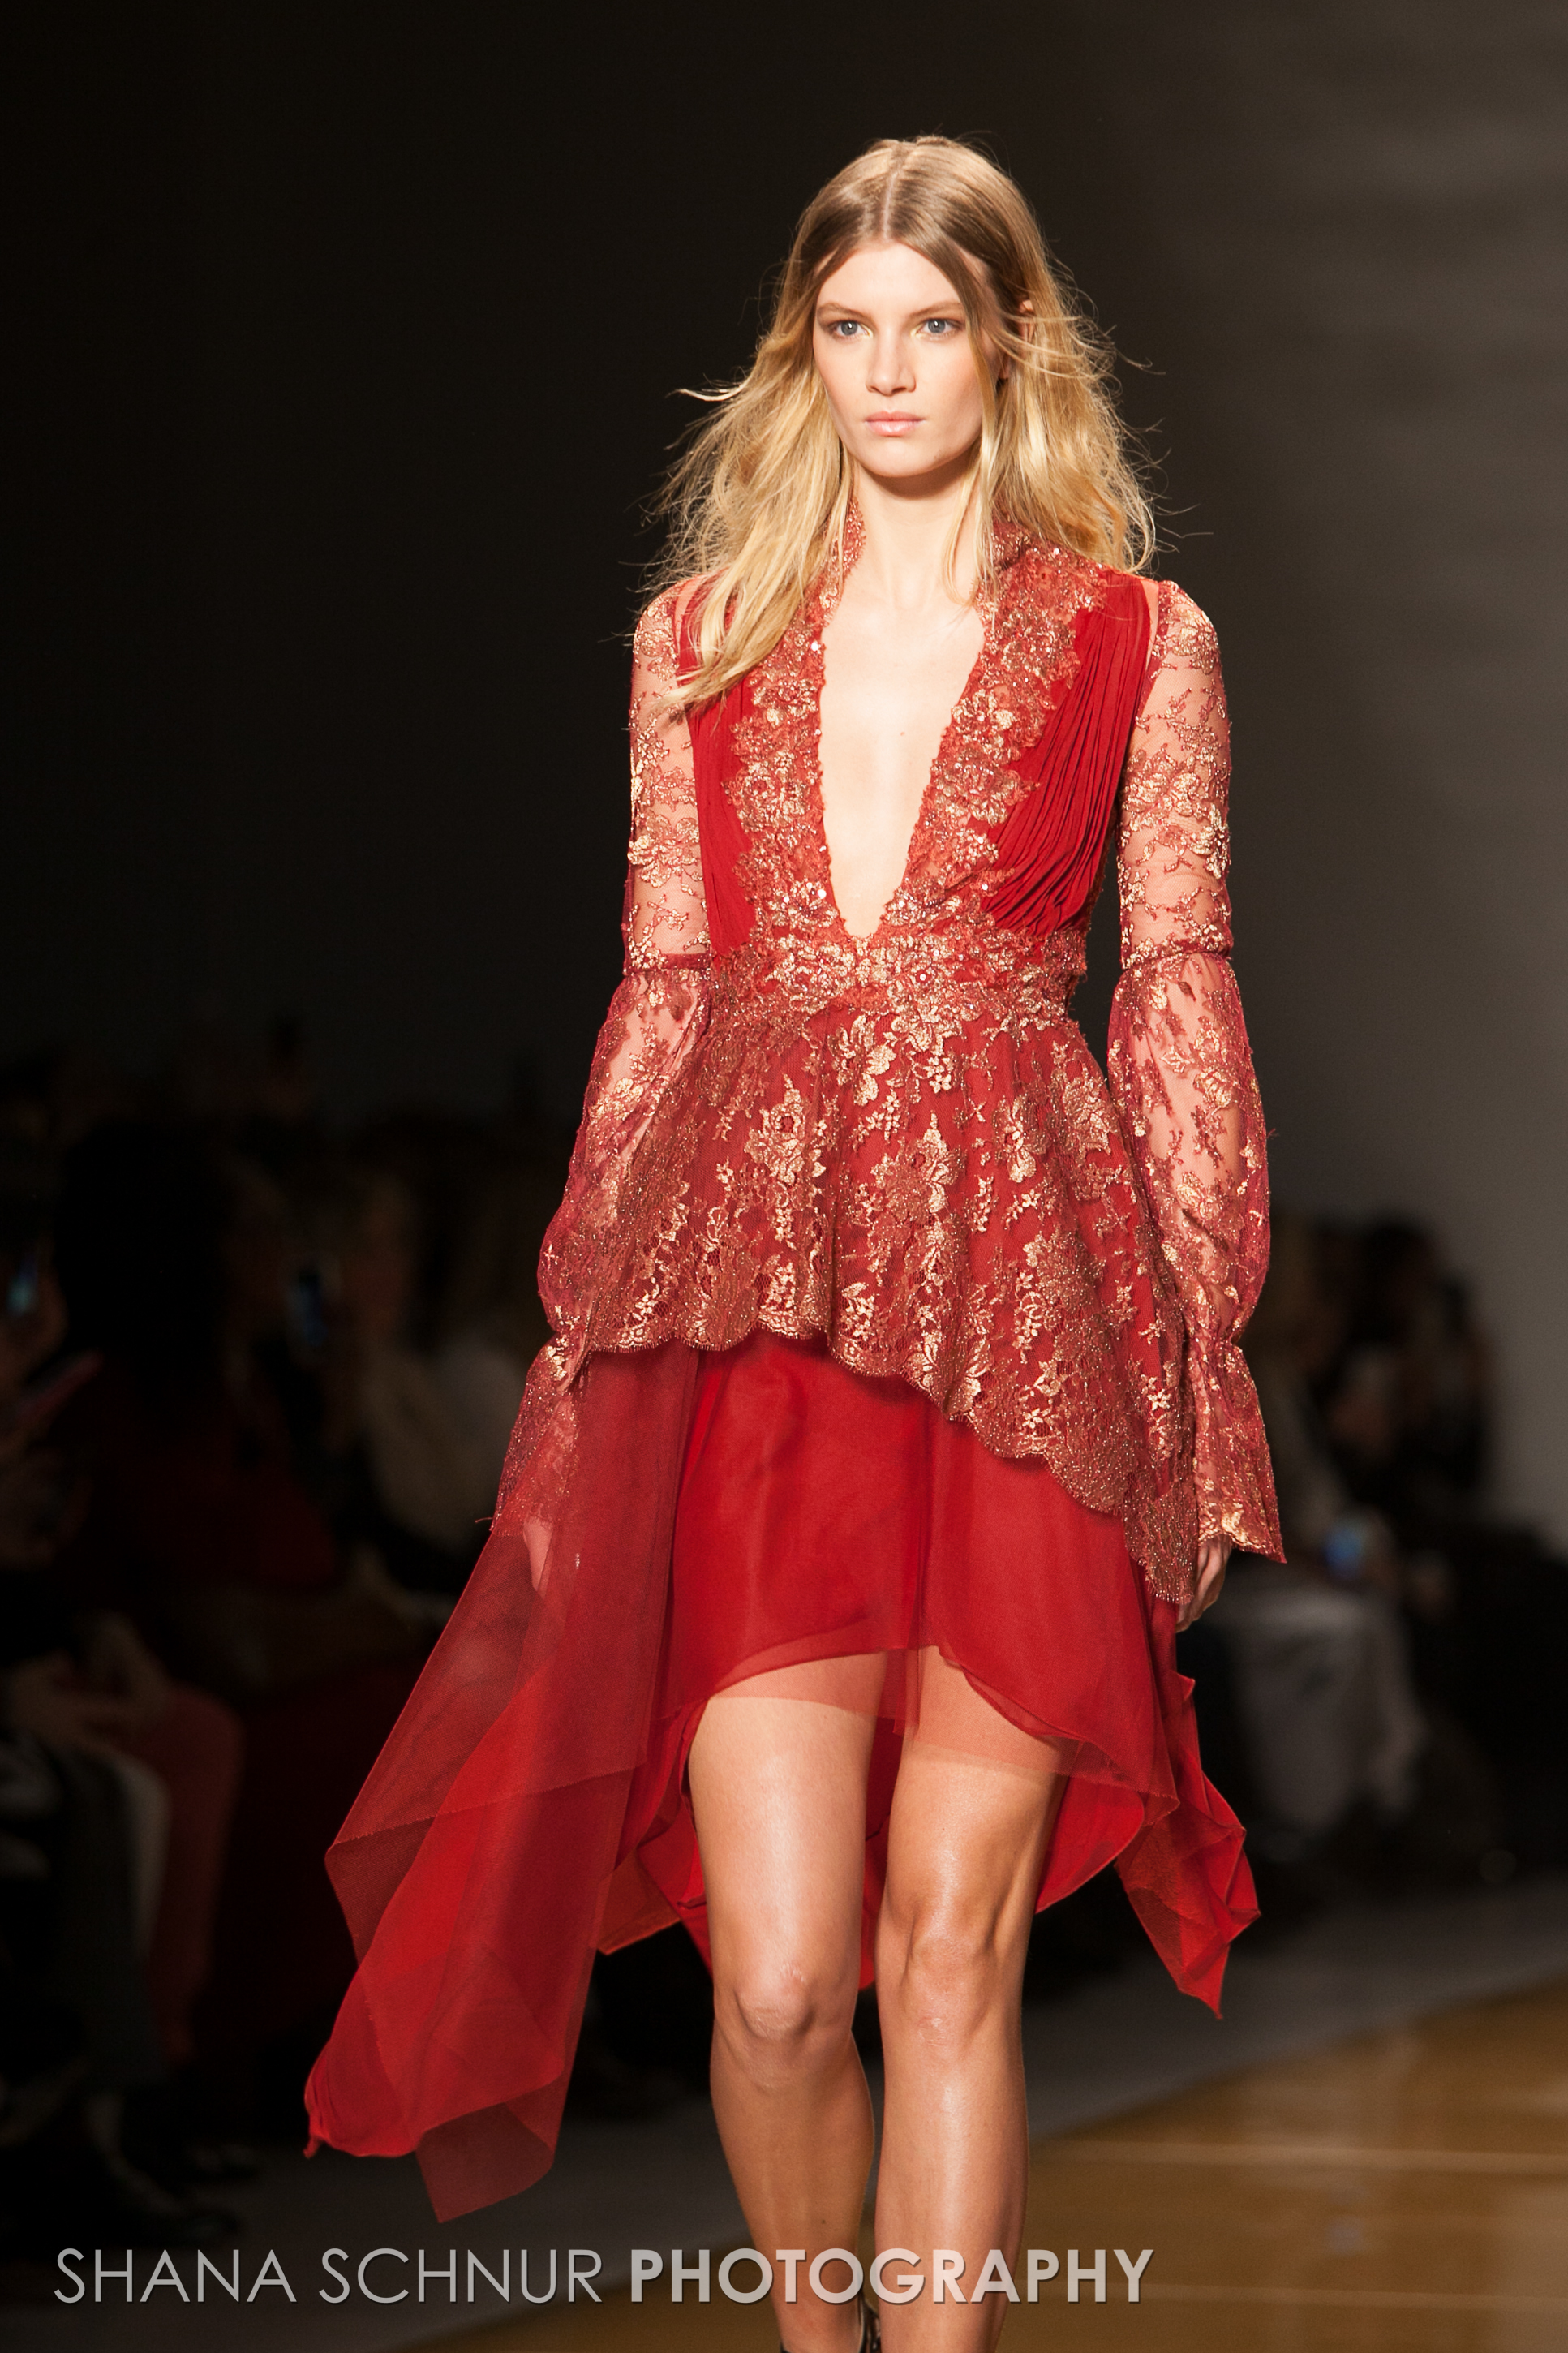 Reem-Acra-New-York-Fashion-Week-Fall-Winter-2015-Shana-Schnur-Photography-IMG_9602-032.jpg